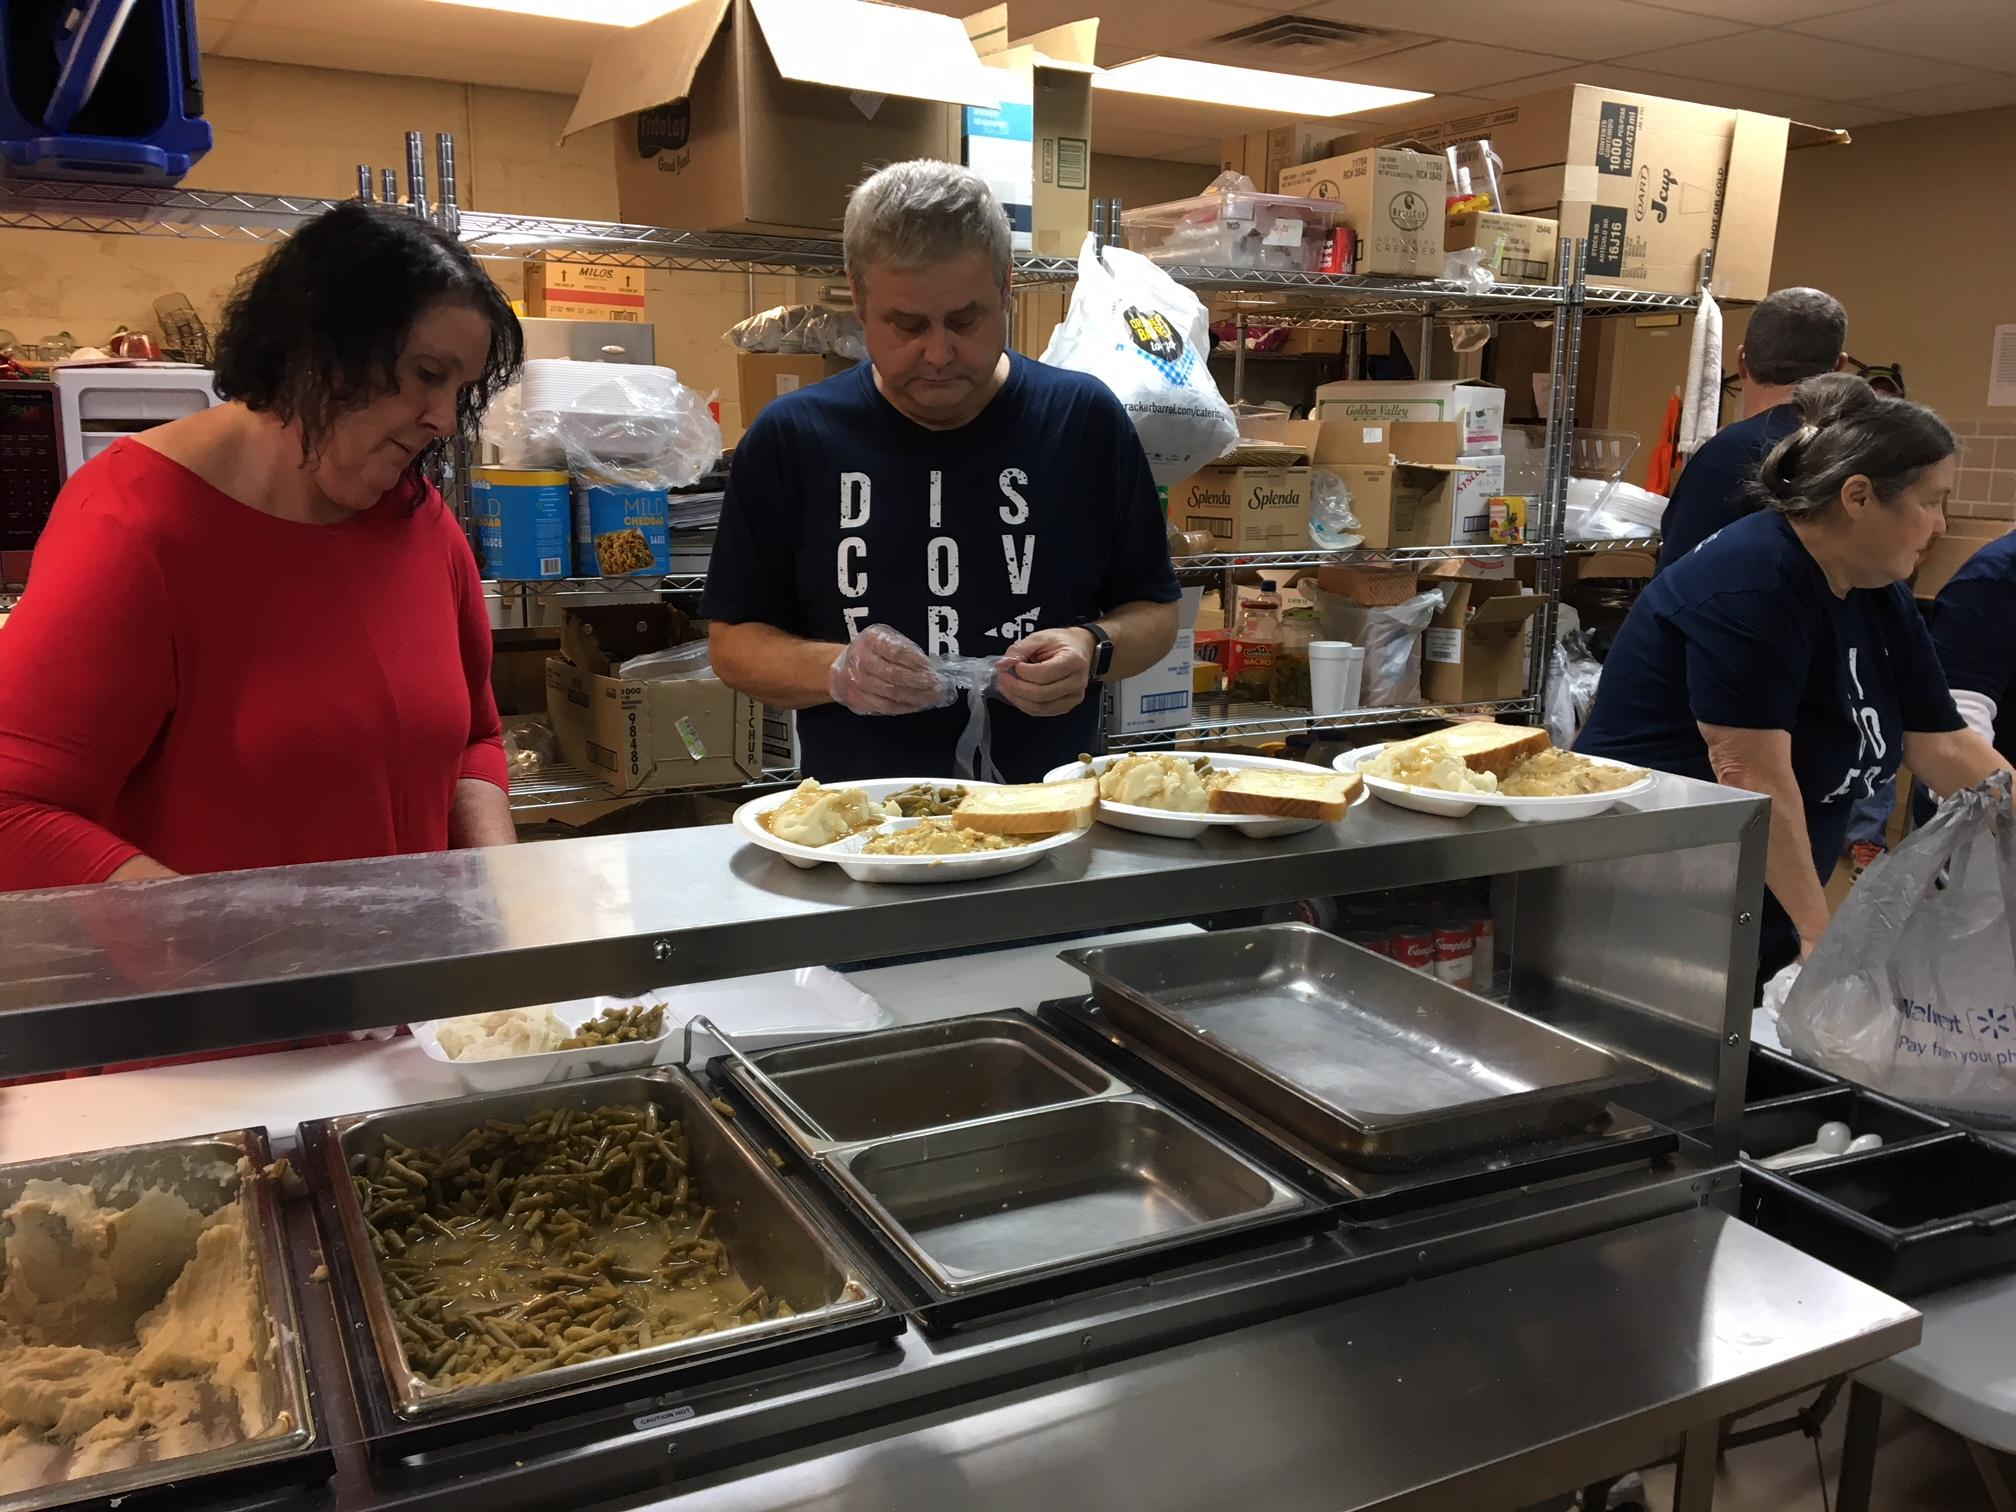 <p>People who eat at the Salvation Army say the volunteers treat strangers like family.{&amp;nbsp;}{&amp;nbsp;}(Image: WTVC)</p><p></p>